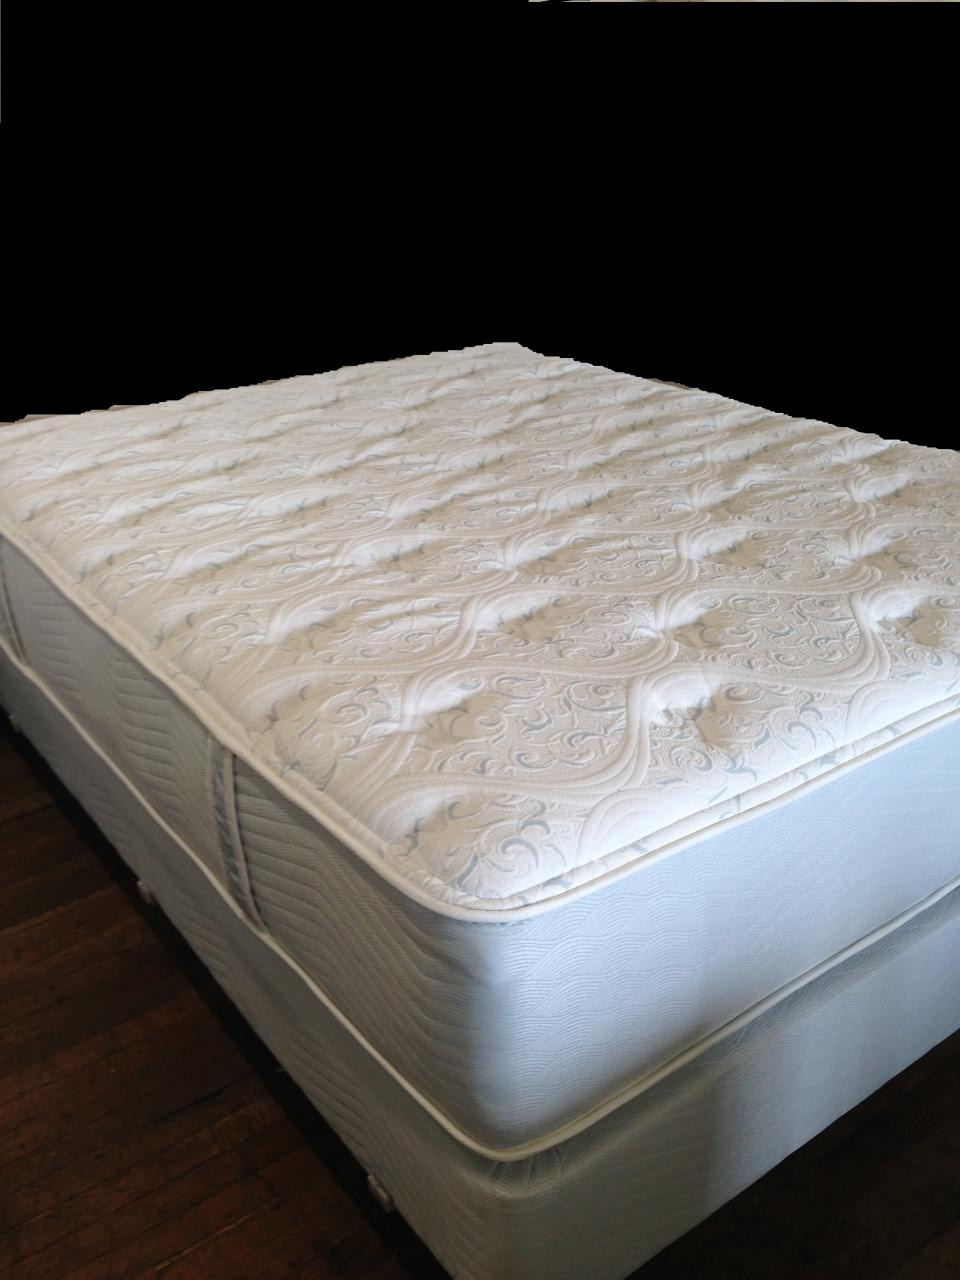 en queen spring products mattress medium catalog ikea firm ca dark beige haugesund